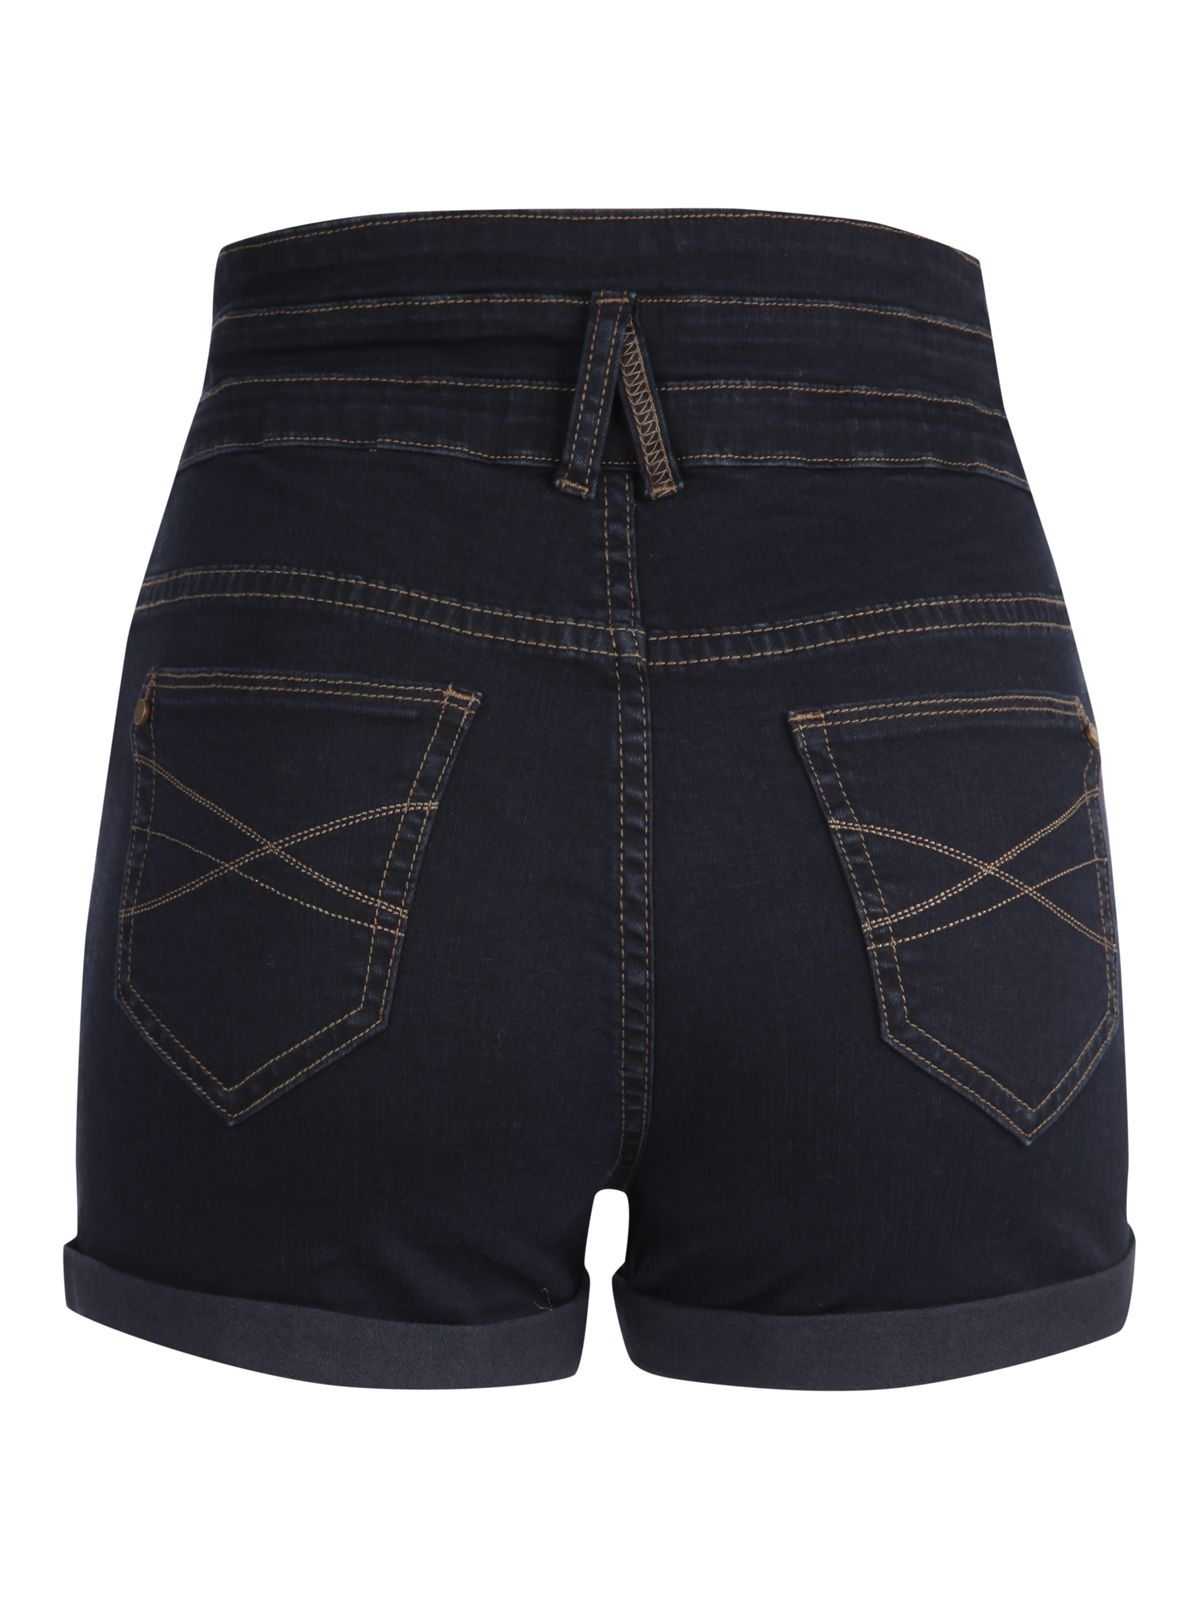 High waist denim hot pant shorts